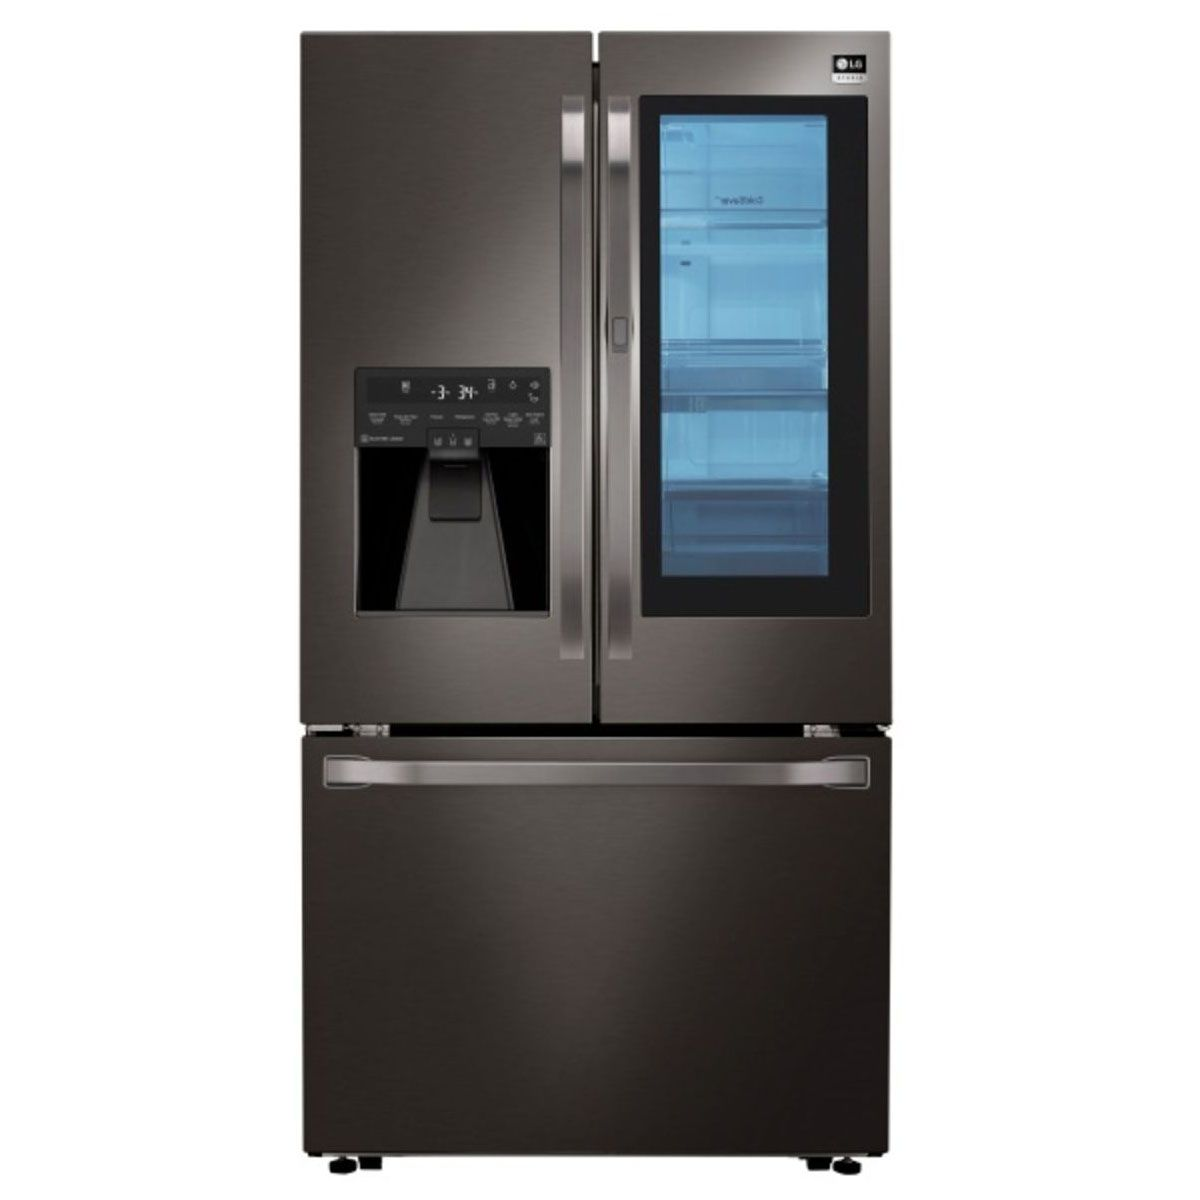 Bringing innovation and quality design together, this black stainless steel LG Studio refrigerator with InstaView Door-in-Door from RC Willey will make even the most beautifully crafted kitchen more stunning.